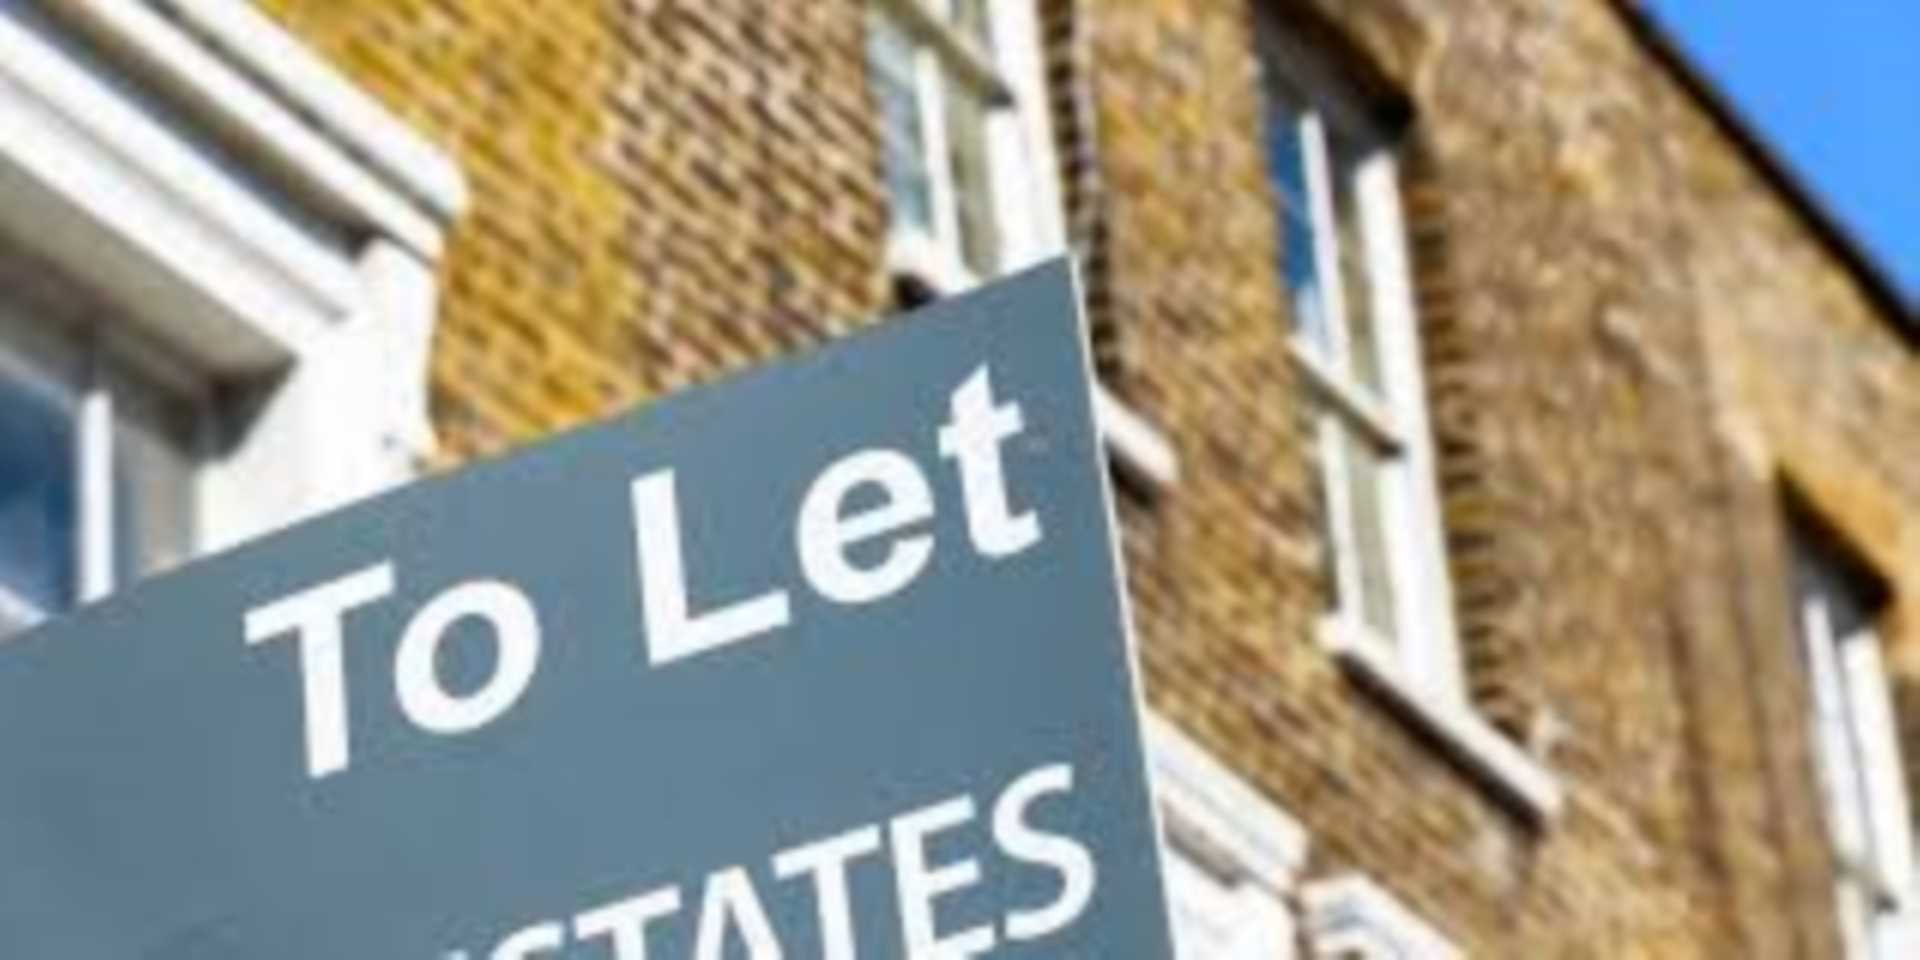 Good news for Lettings - upbeat market forecast for next five years